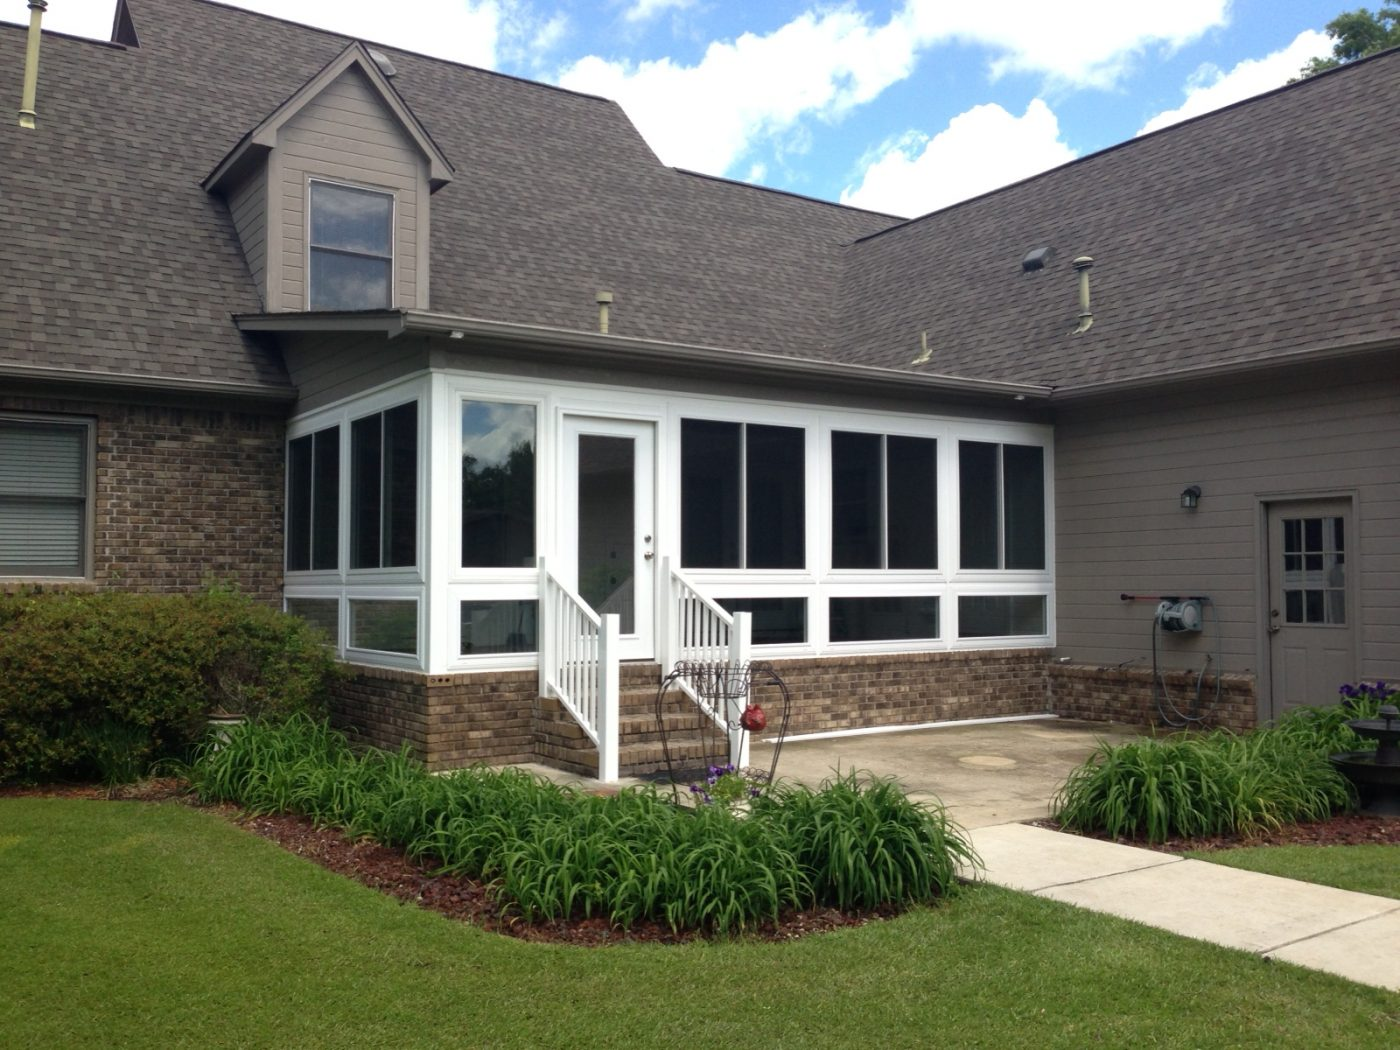 Four seasons sunrooms choice windows doors for Sun room additions